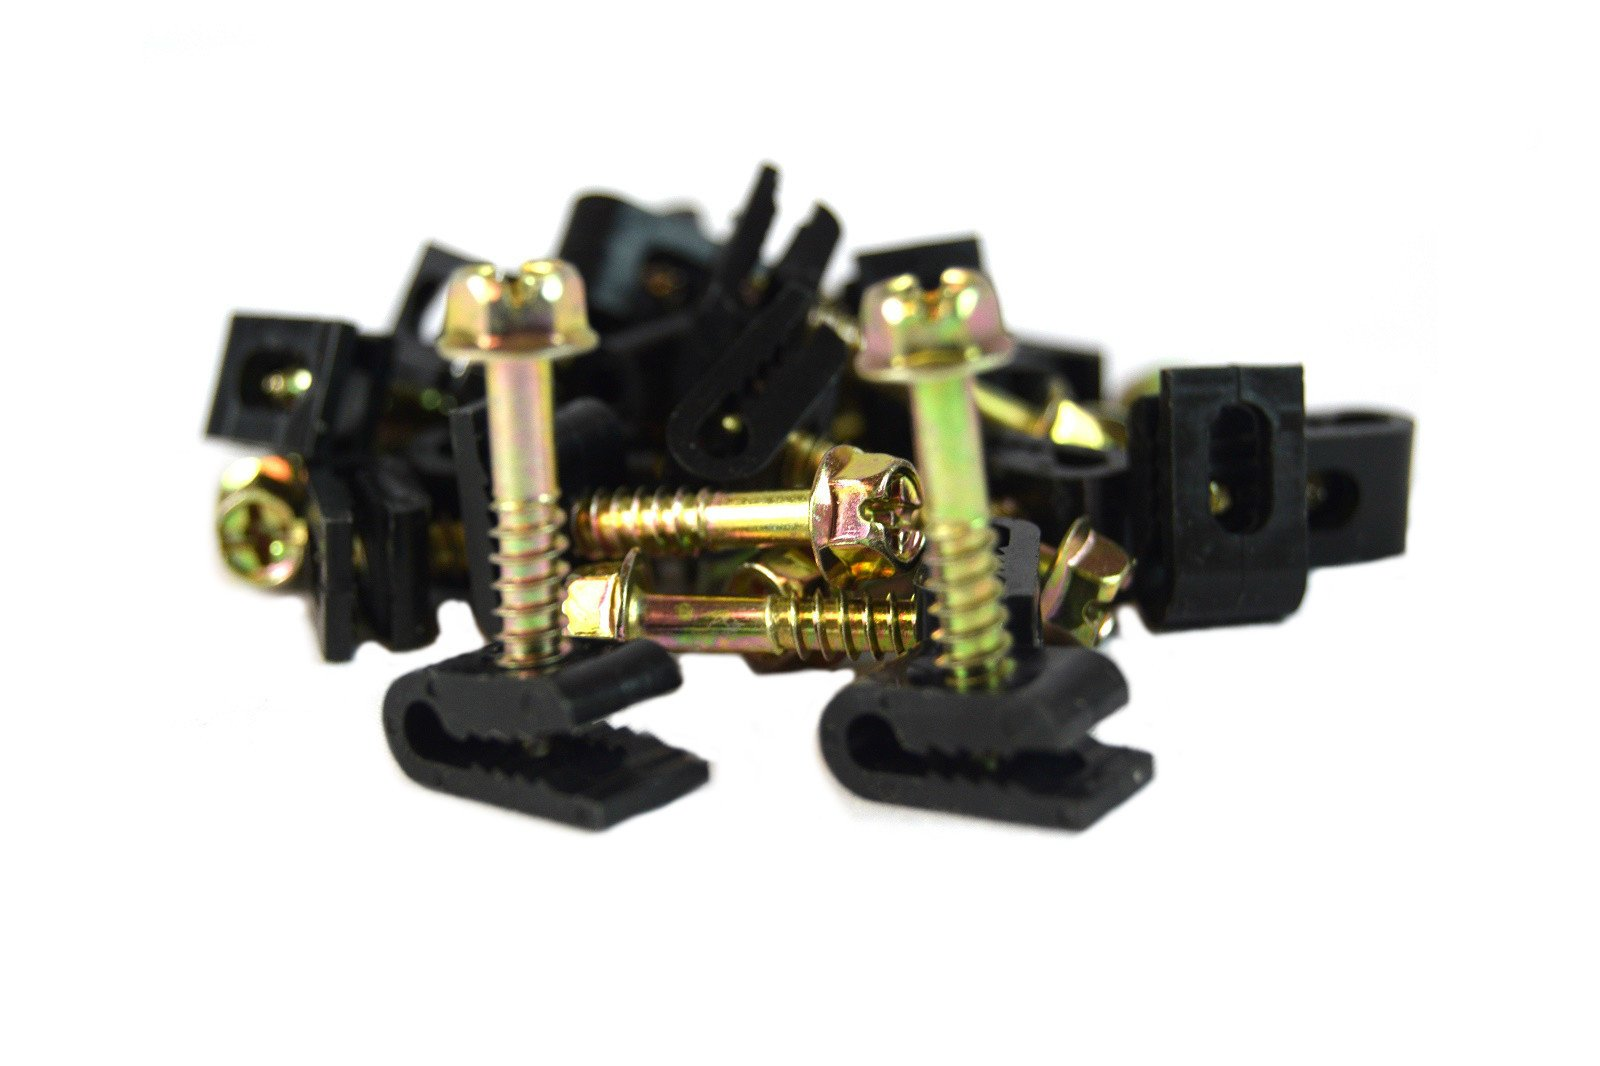 500 Pcs Ground Wire Black Flex Clips with Screw 10 12 14 Gauge GA AWG by WoldTec (Image #2)